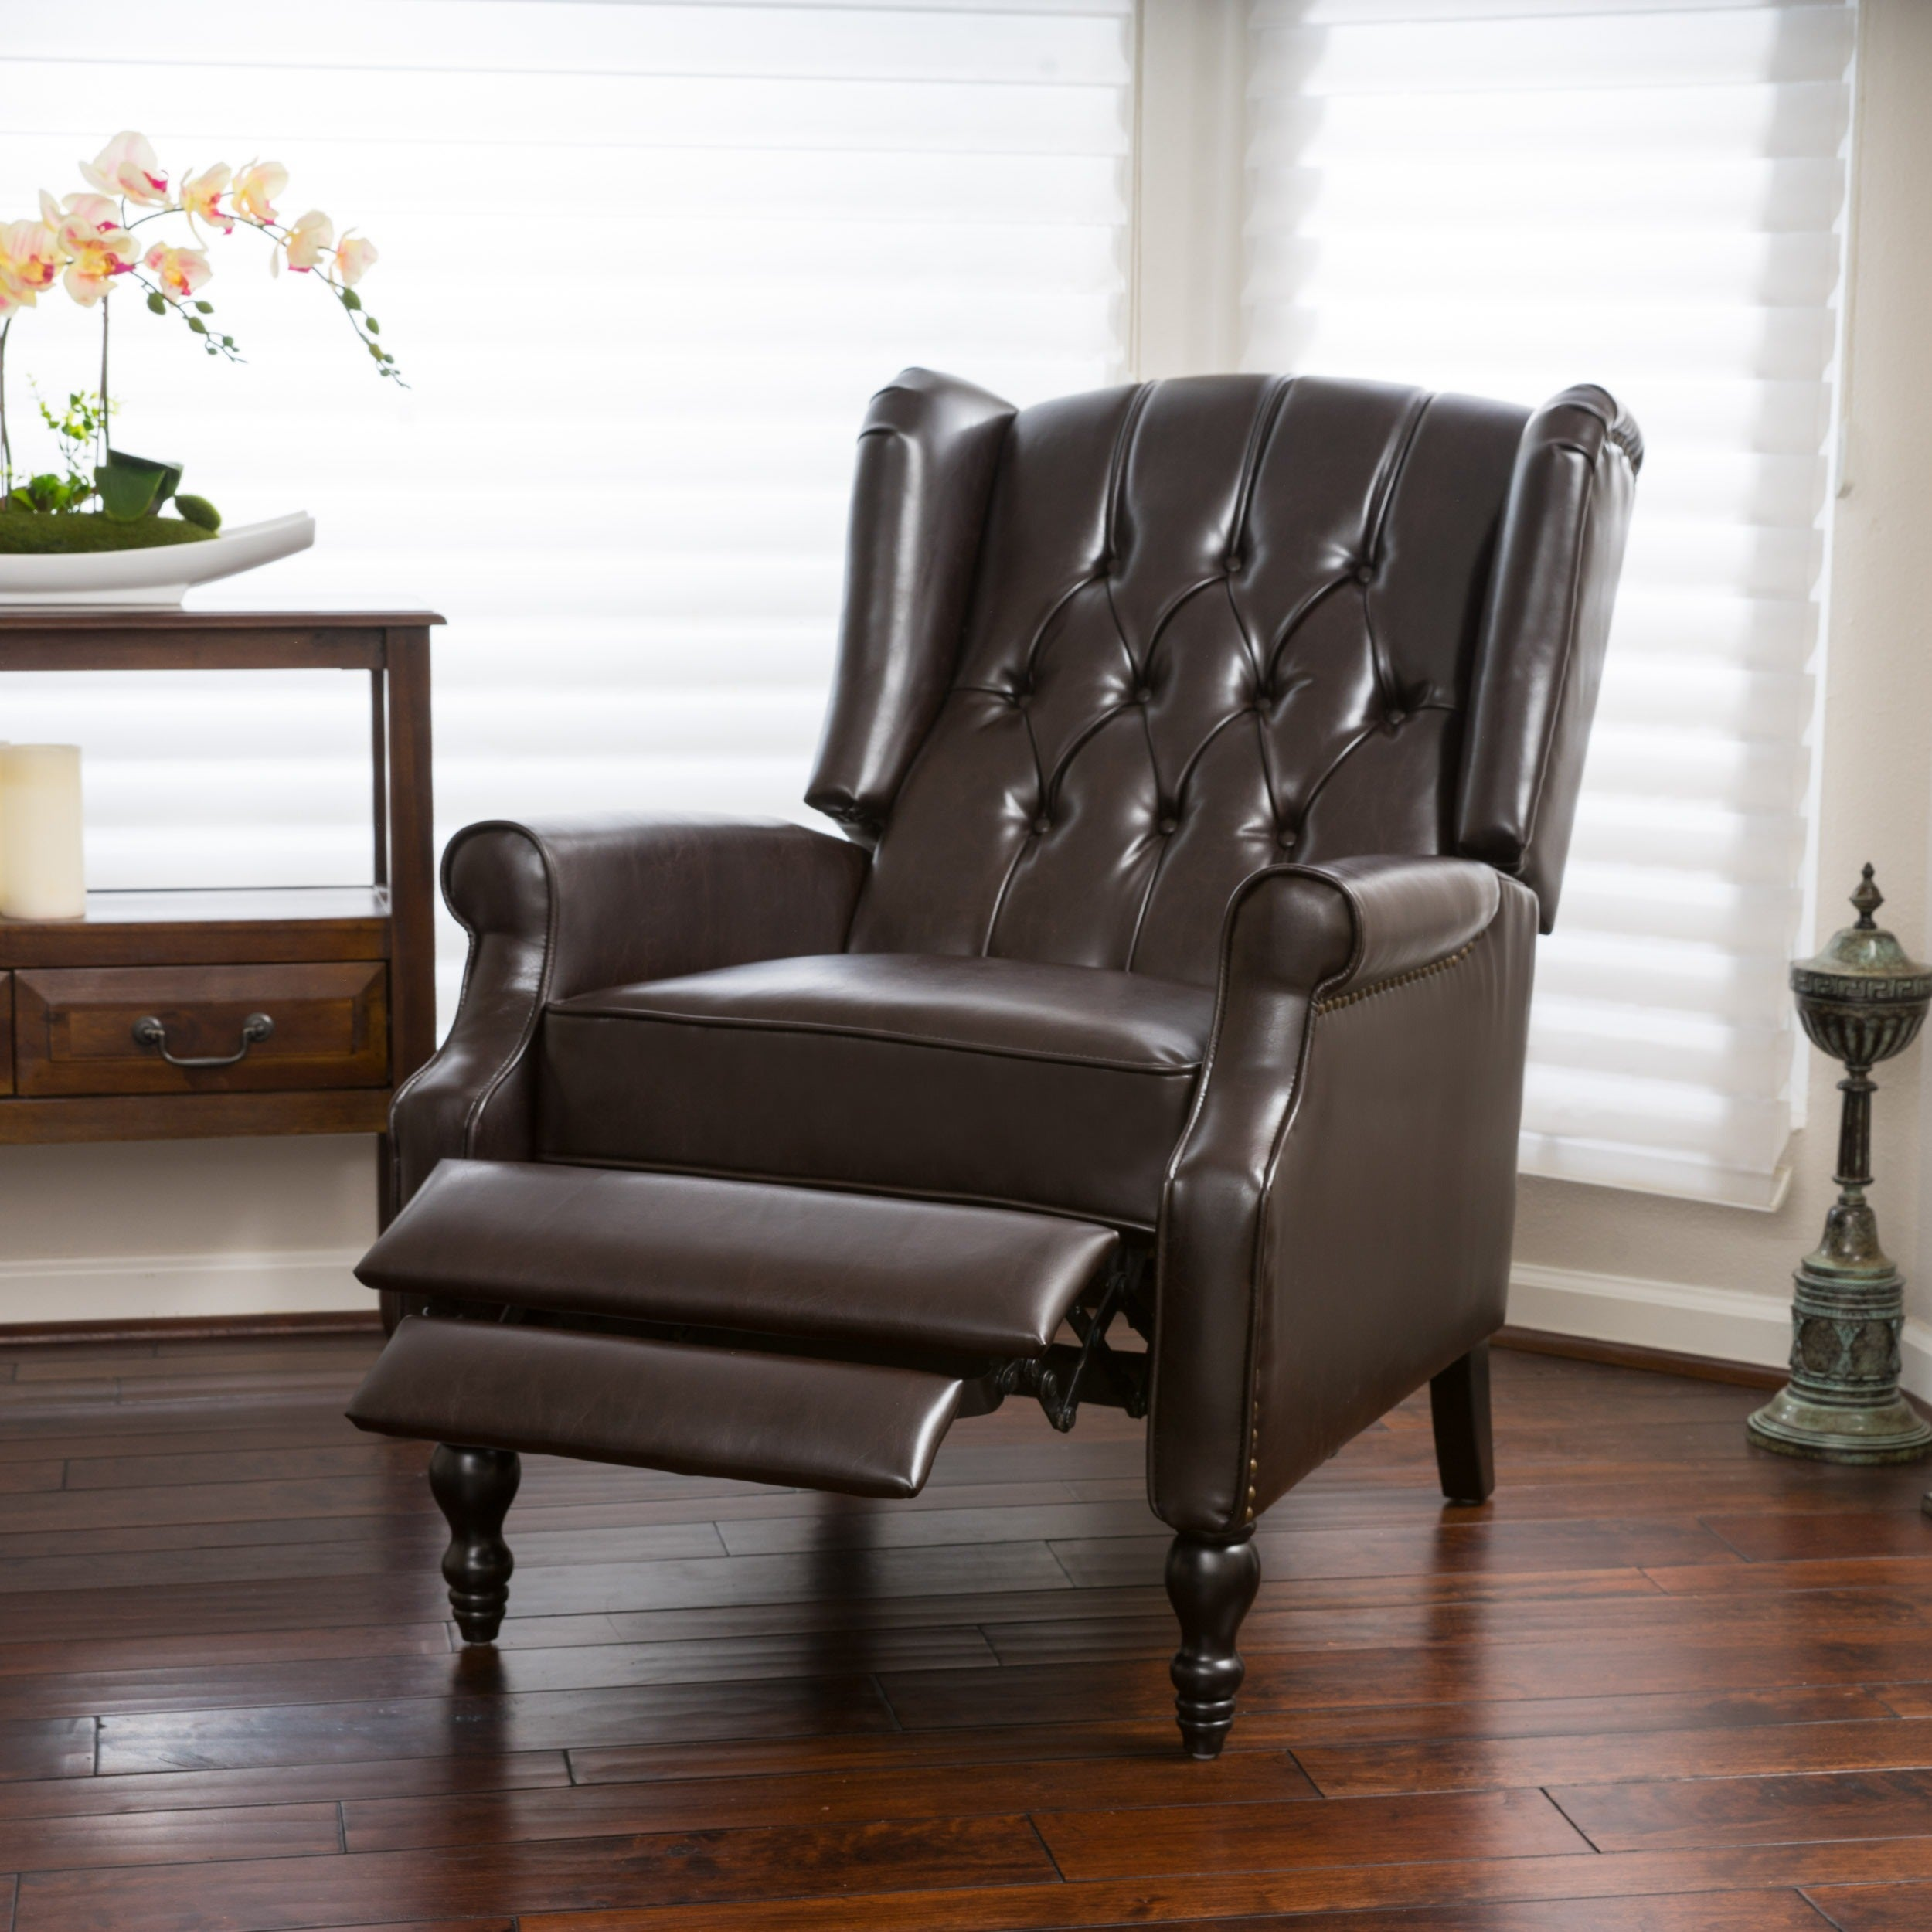 ralph klaussner high bent and by products leg furniture reclining wolf arm recliner gardiner chair